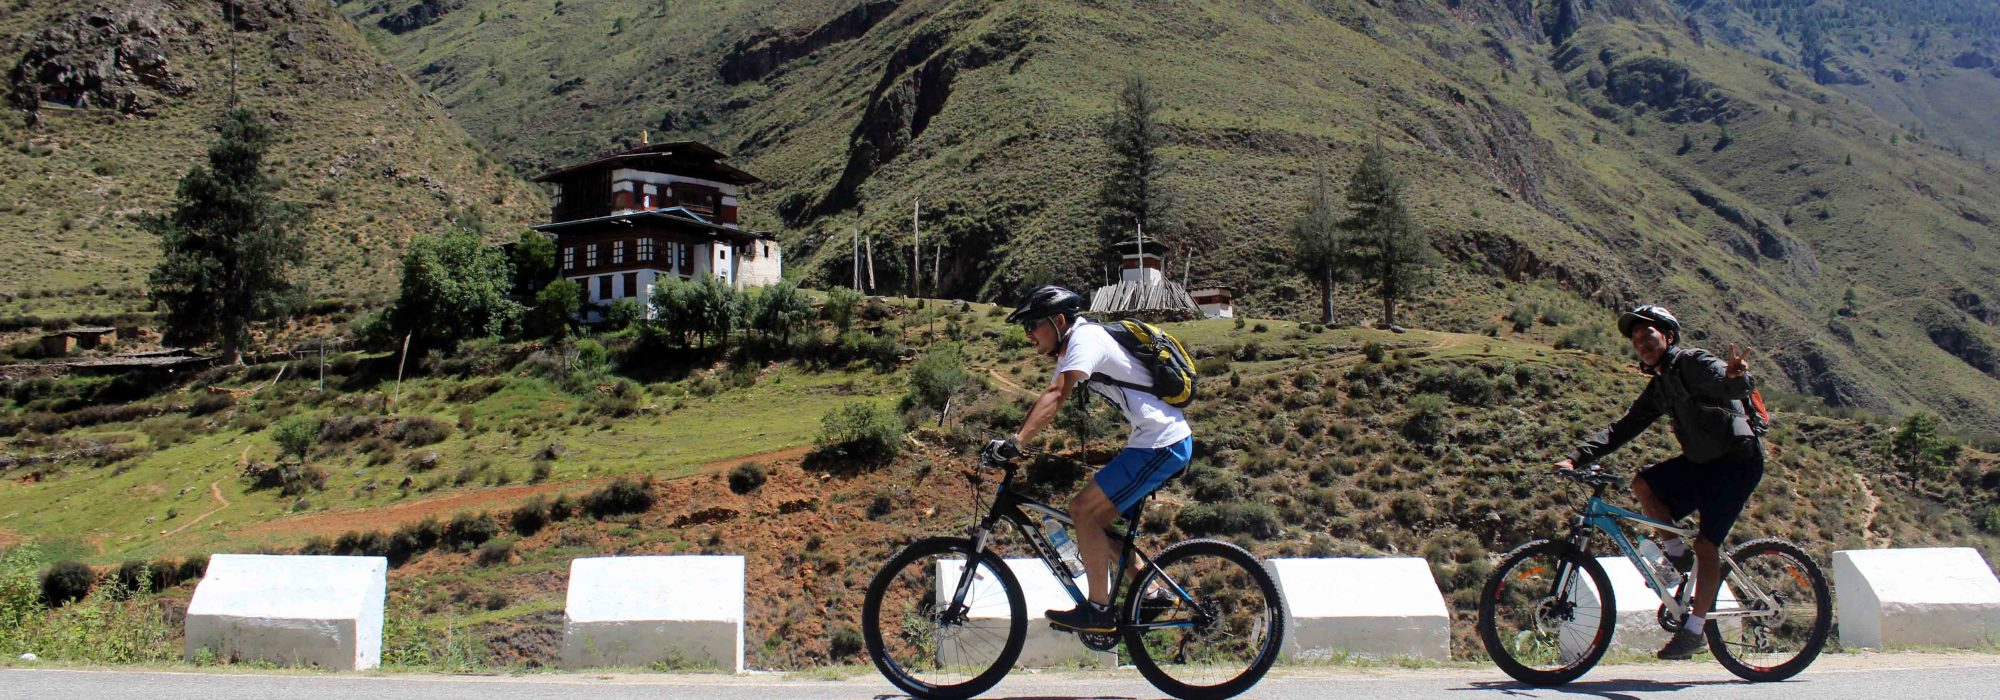 Whole Bhutan Biking Tour